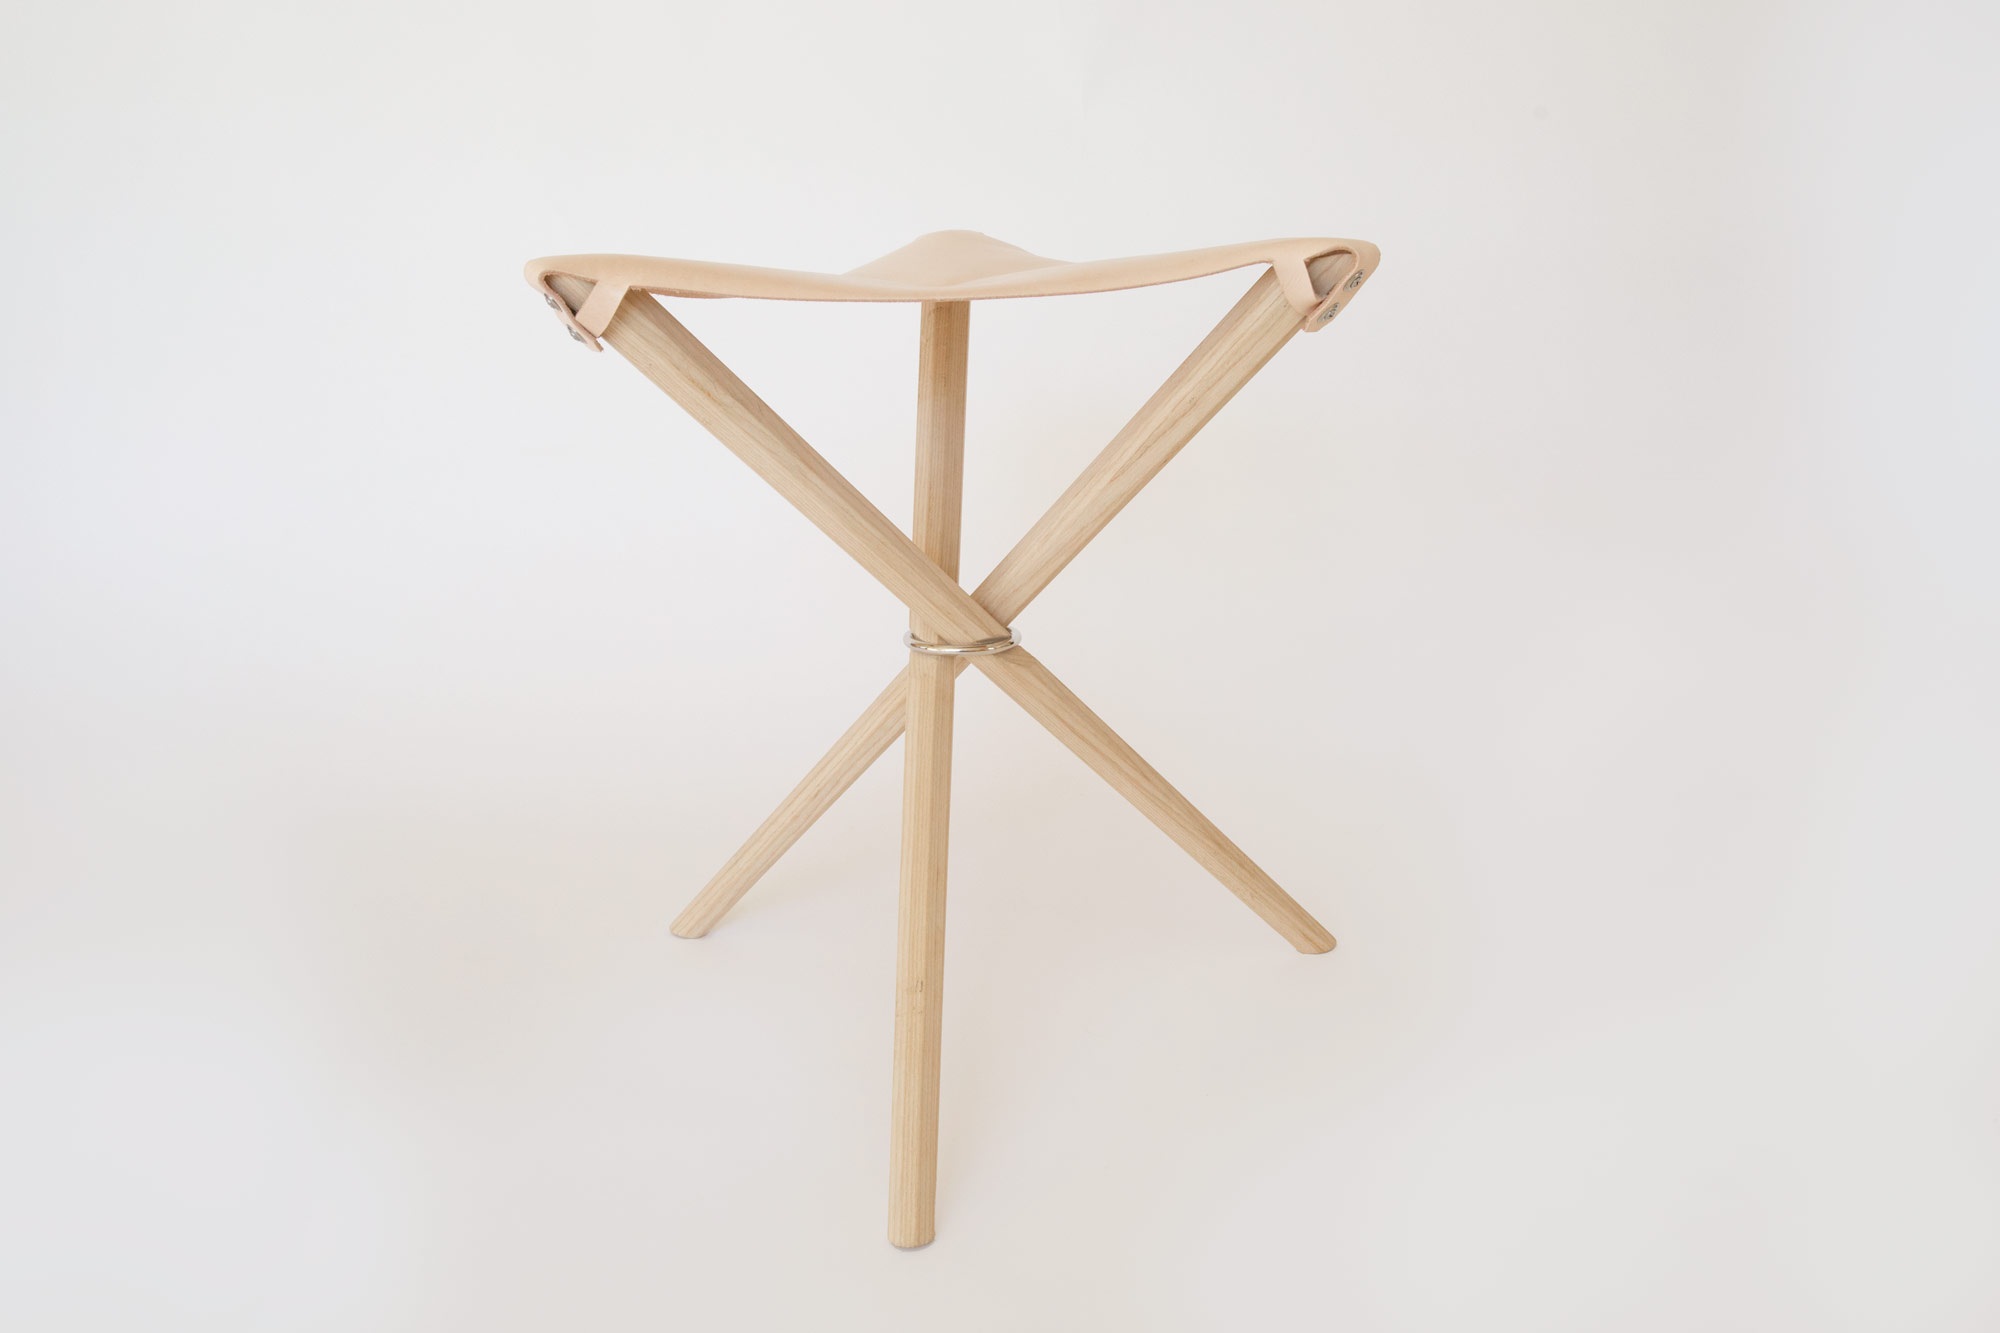 Coyote Stool in Veg Tan without Leash